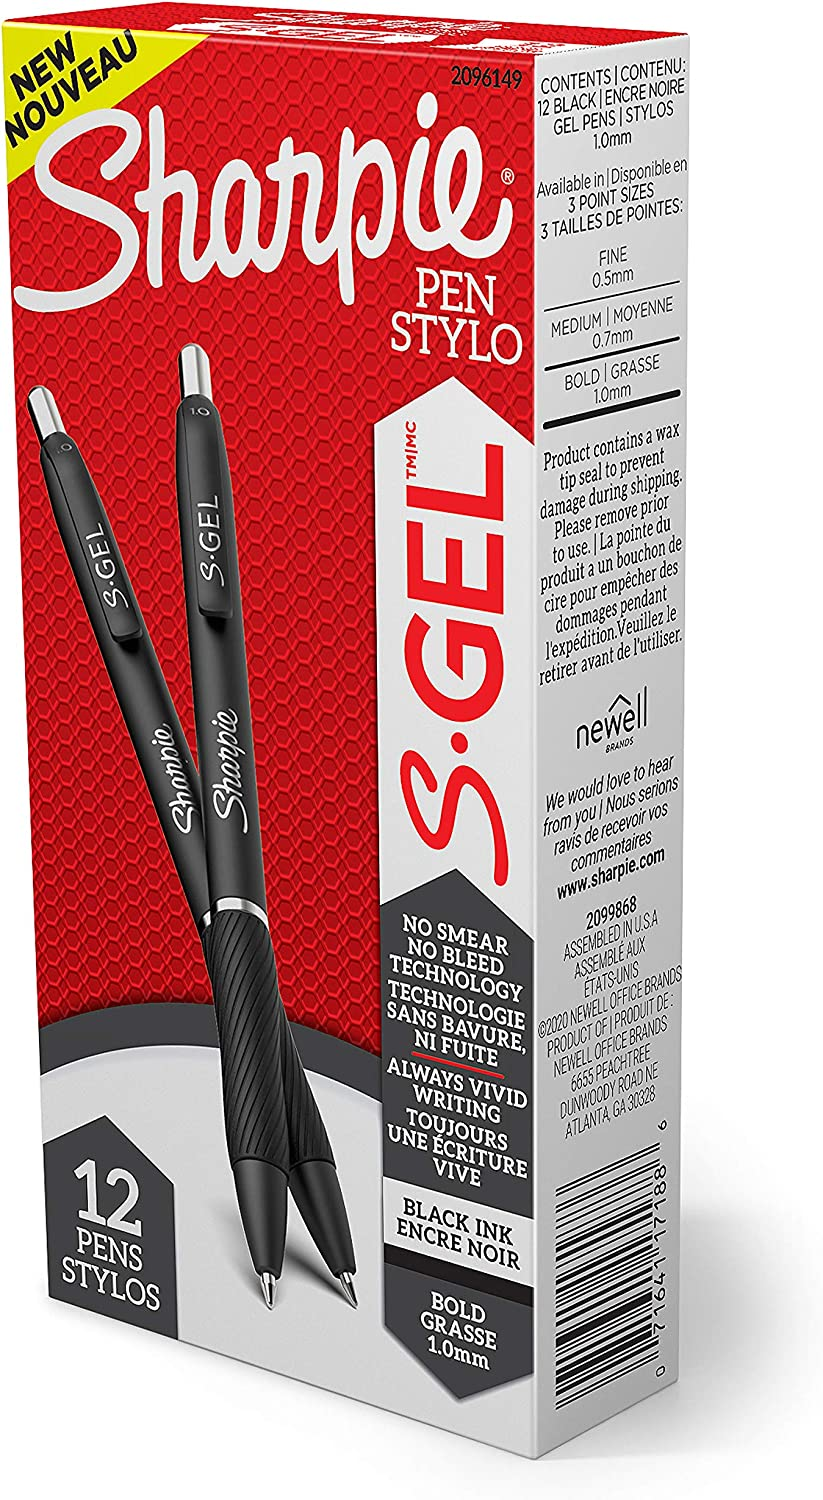 Genuine Free Shipping Sharpie All stores are sold S-Gel Gel Pens Bold 1.0mm Pen Ink Black Point